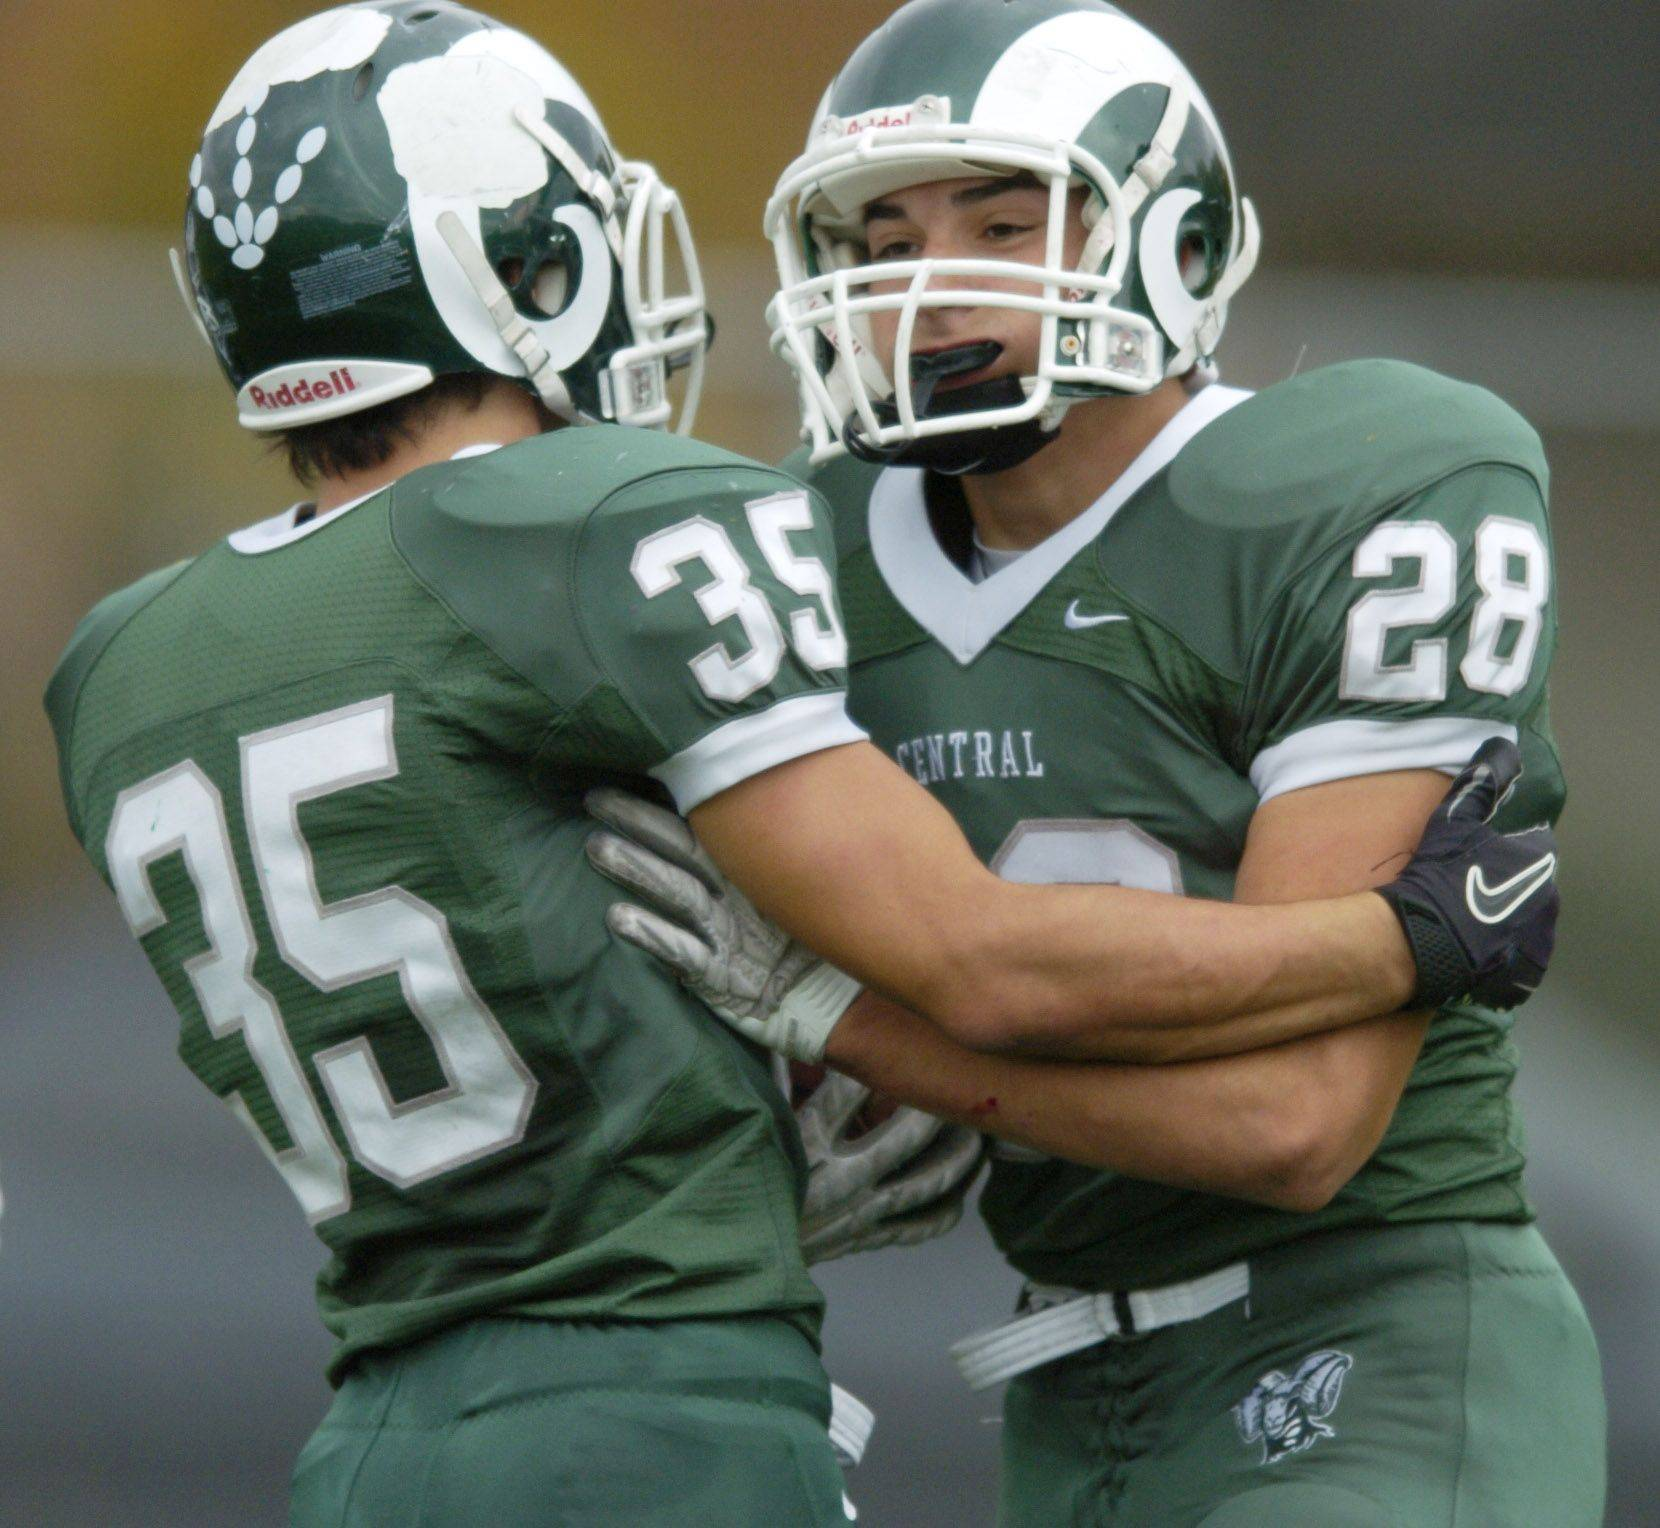 JOE LEWNARD/jlewnard@dailyherald.com Grayslake Central's Joel Valdivia, right, celebrates his first-quarter touchdown with teammate Vinnie Culhane.